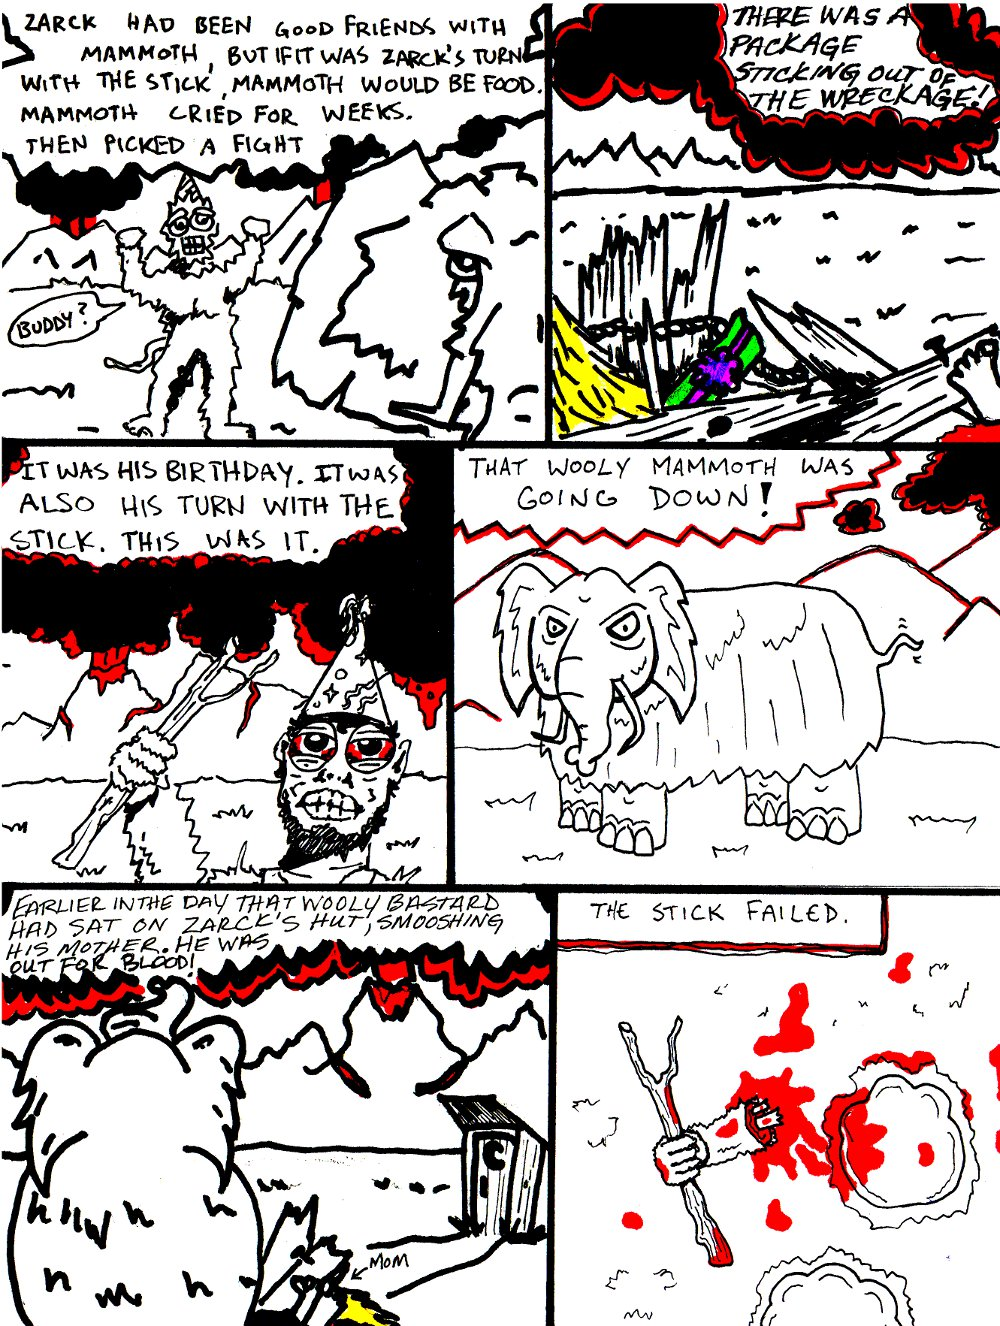 ZARCK AND MAMMOTH (by Marx McNeill, Nate Crone, and Stacey McCulley)